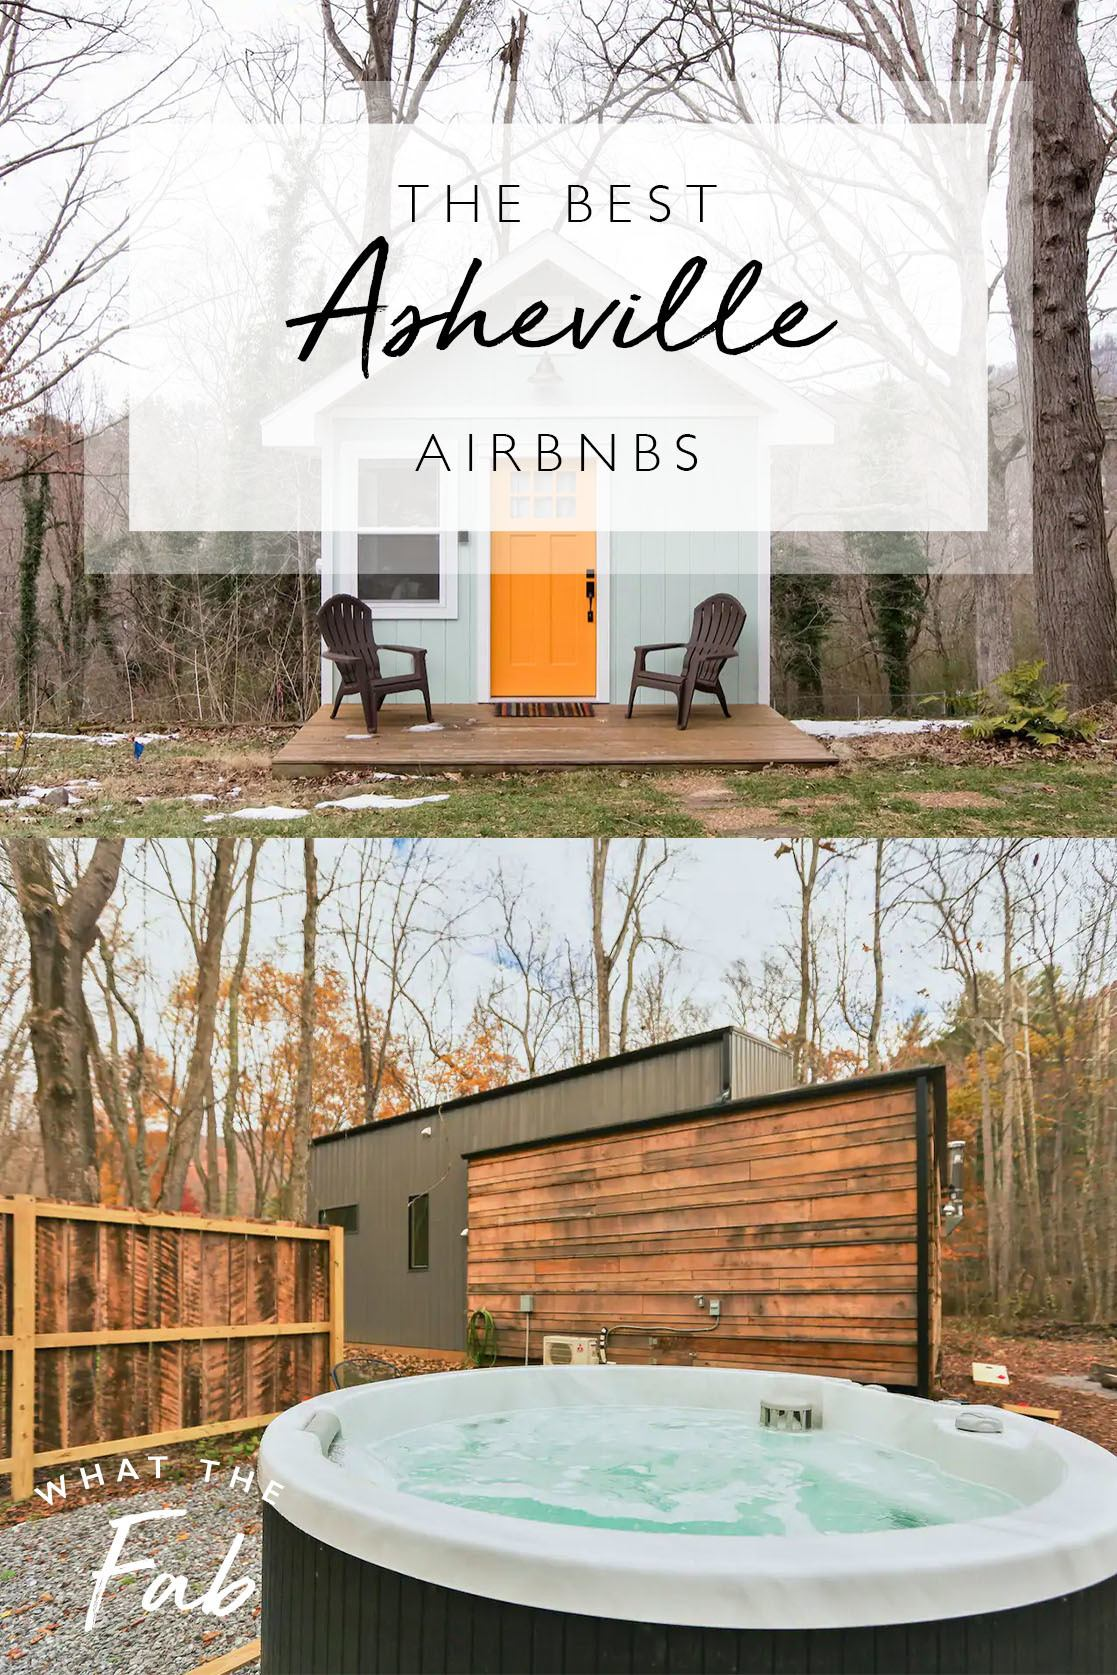 The best Airbnbs in Asheville NC, by Travel Blogger What The Fab